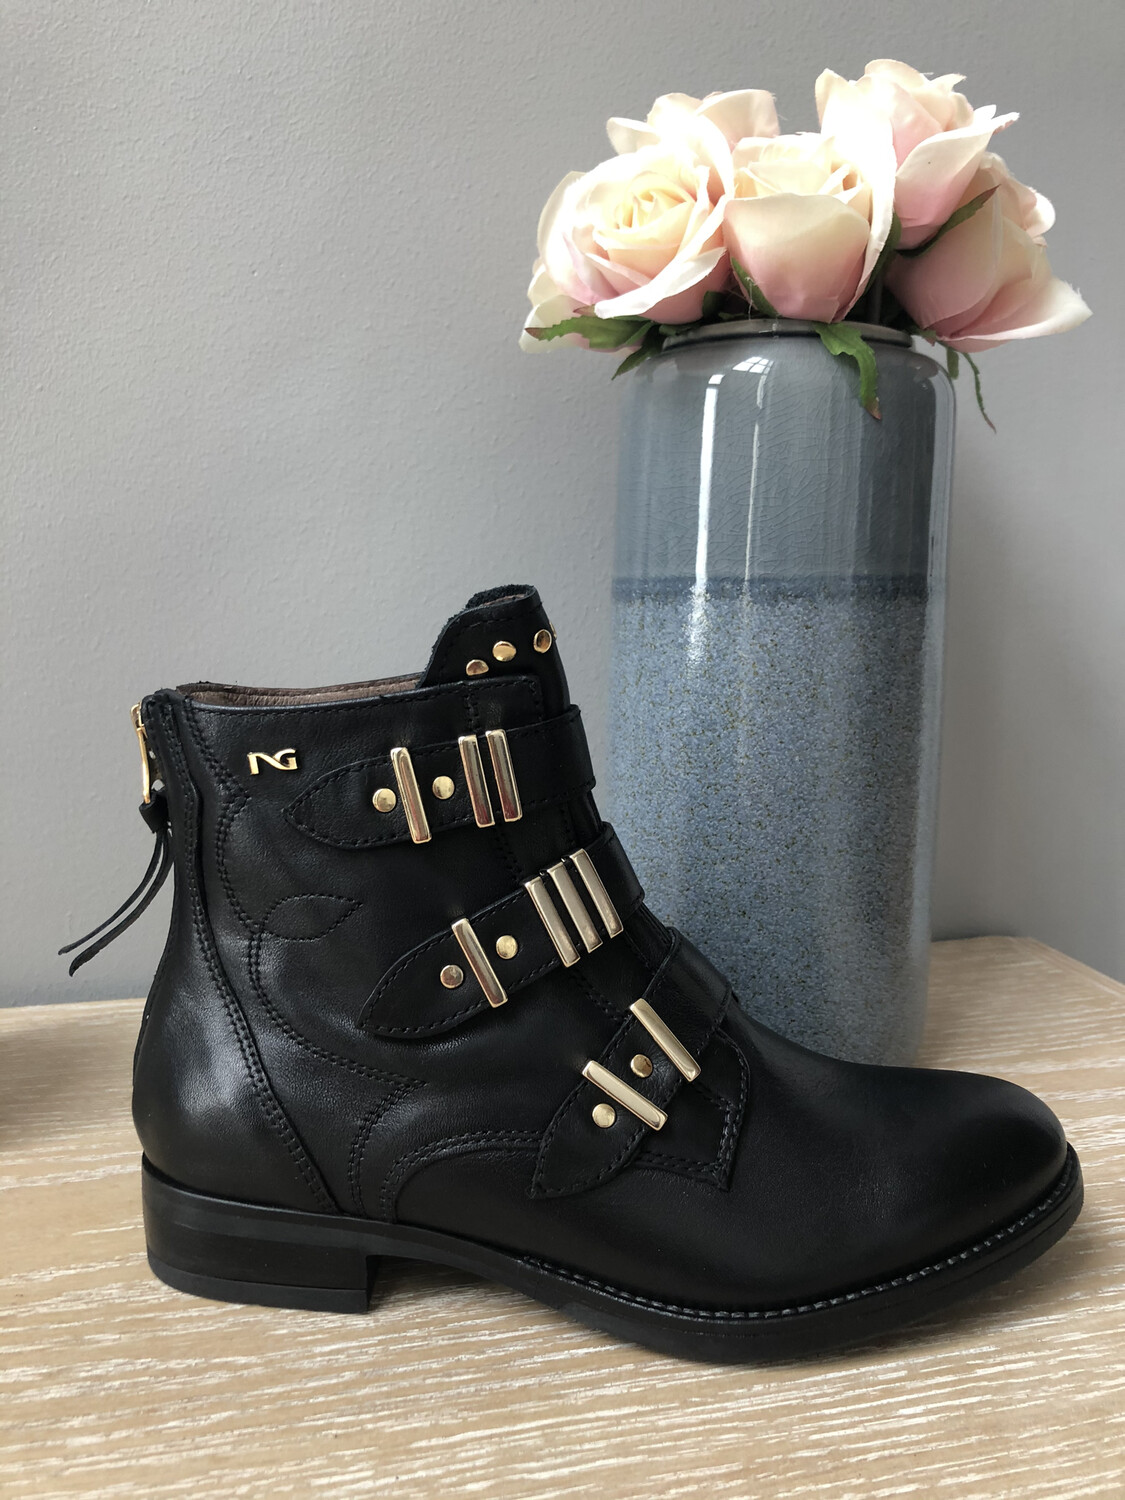 Black Leather Biker Ankle Boot With Gold Buckles